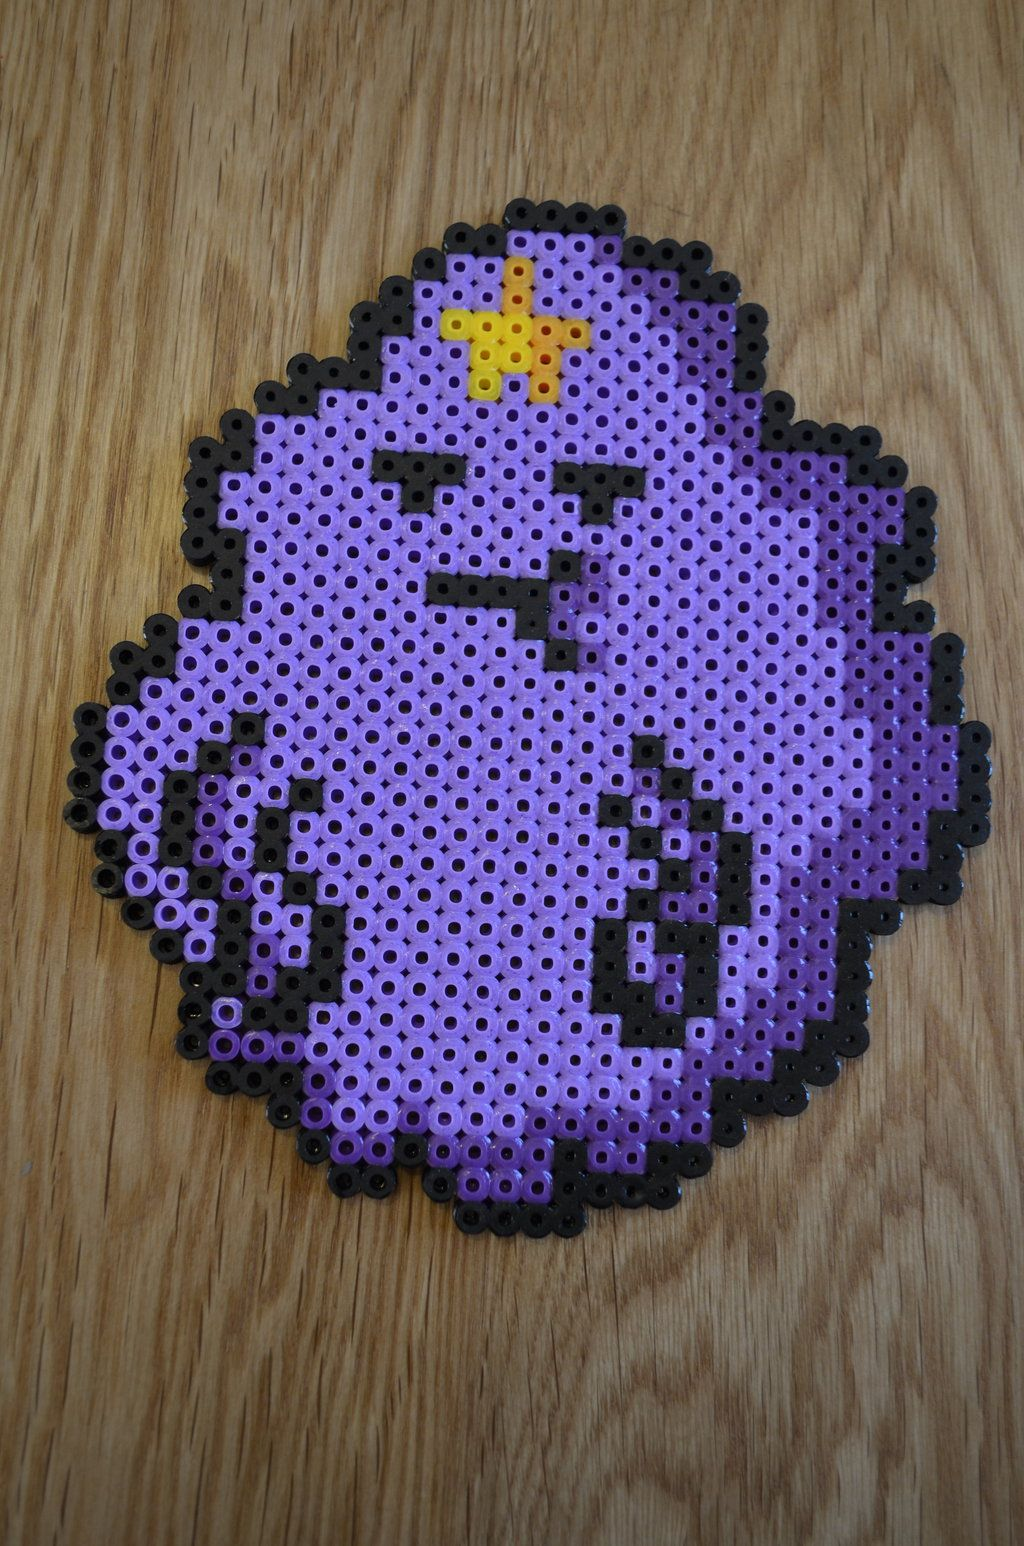 Lumpy Space Princess Hama Beads by sophiemai on deviantart